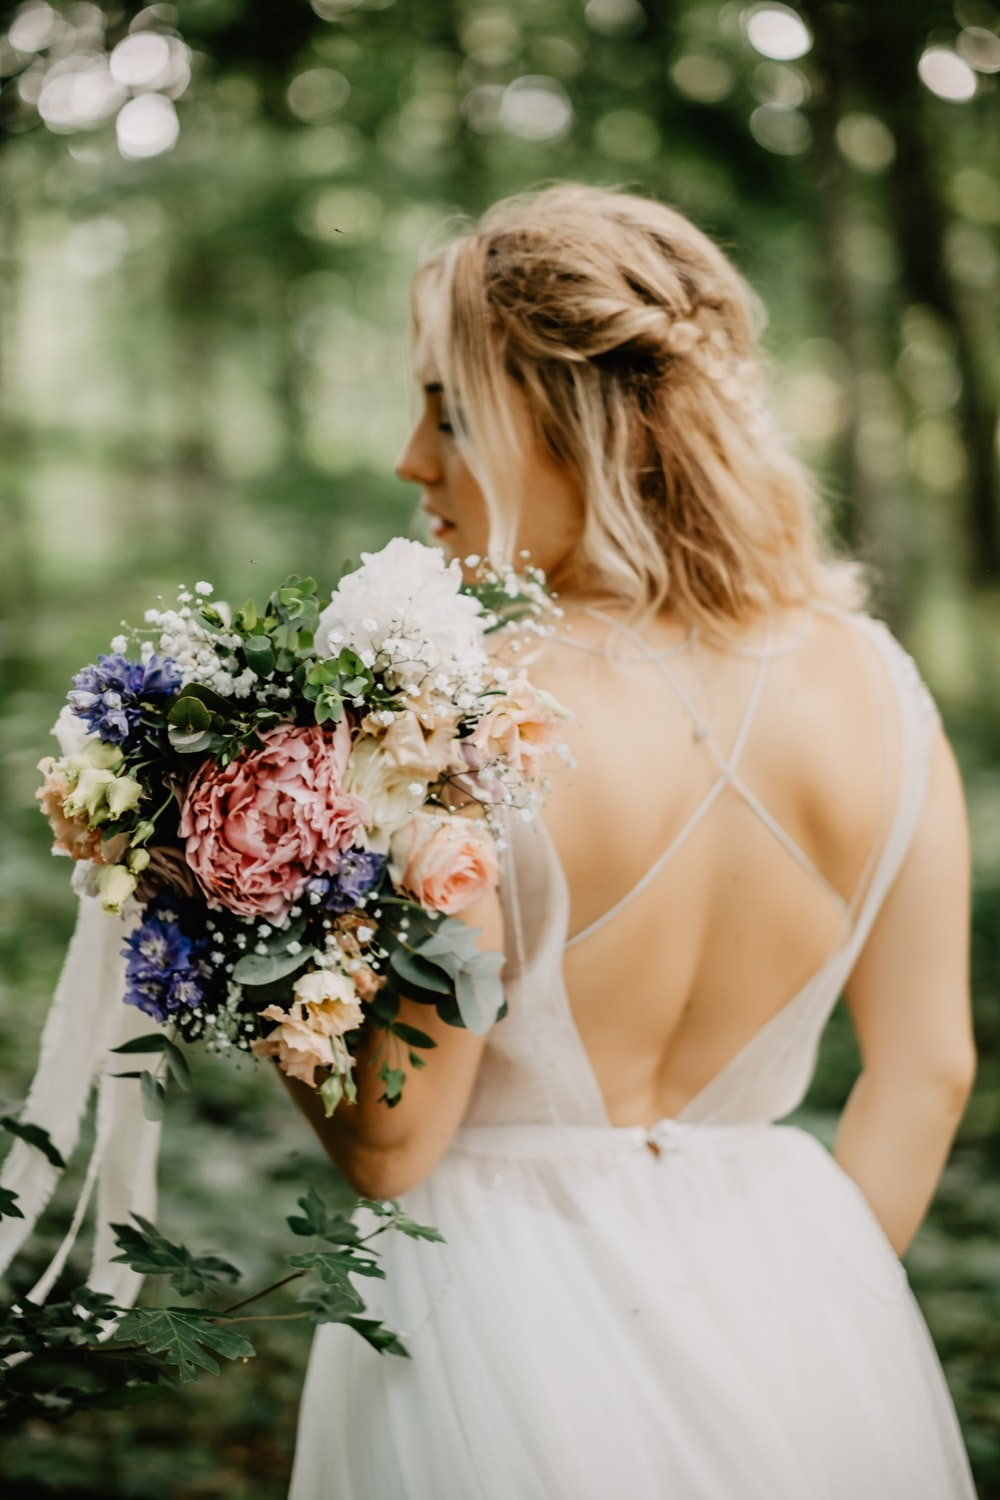 woman in white tube dress holding bouquet of flowers